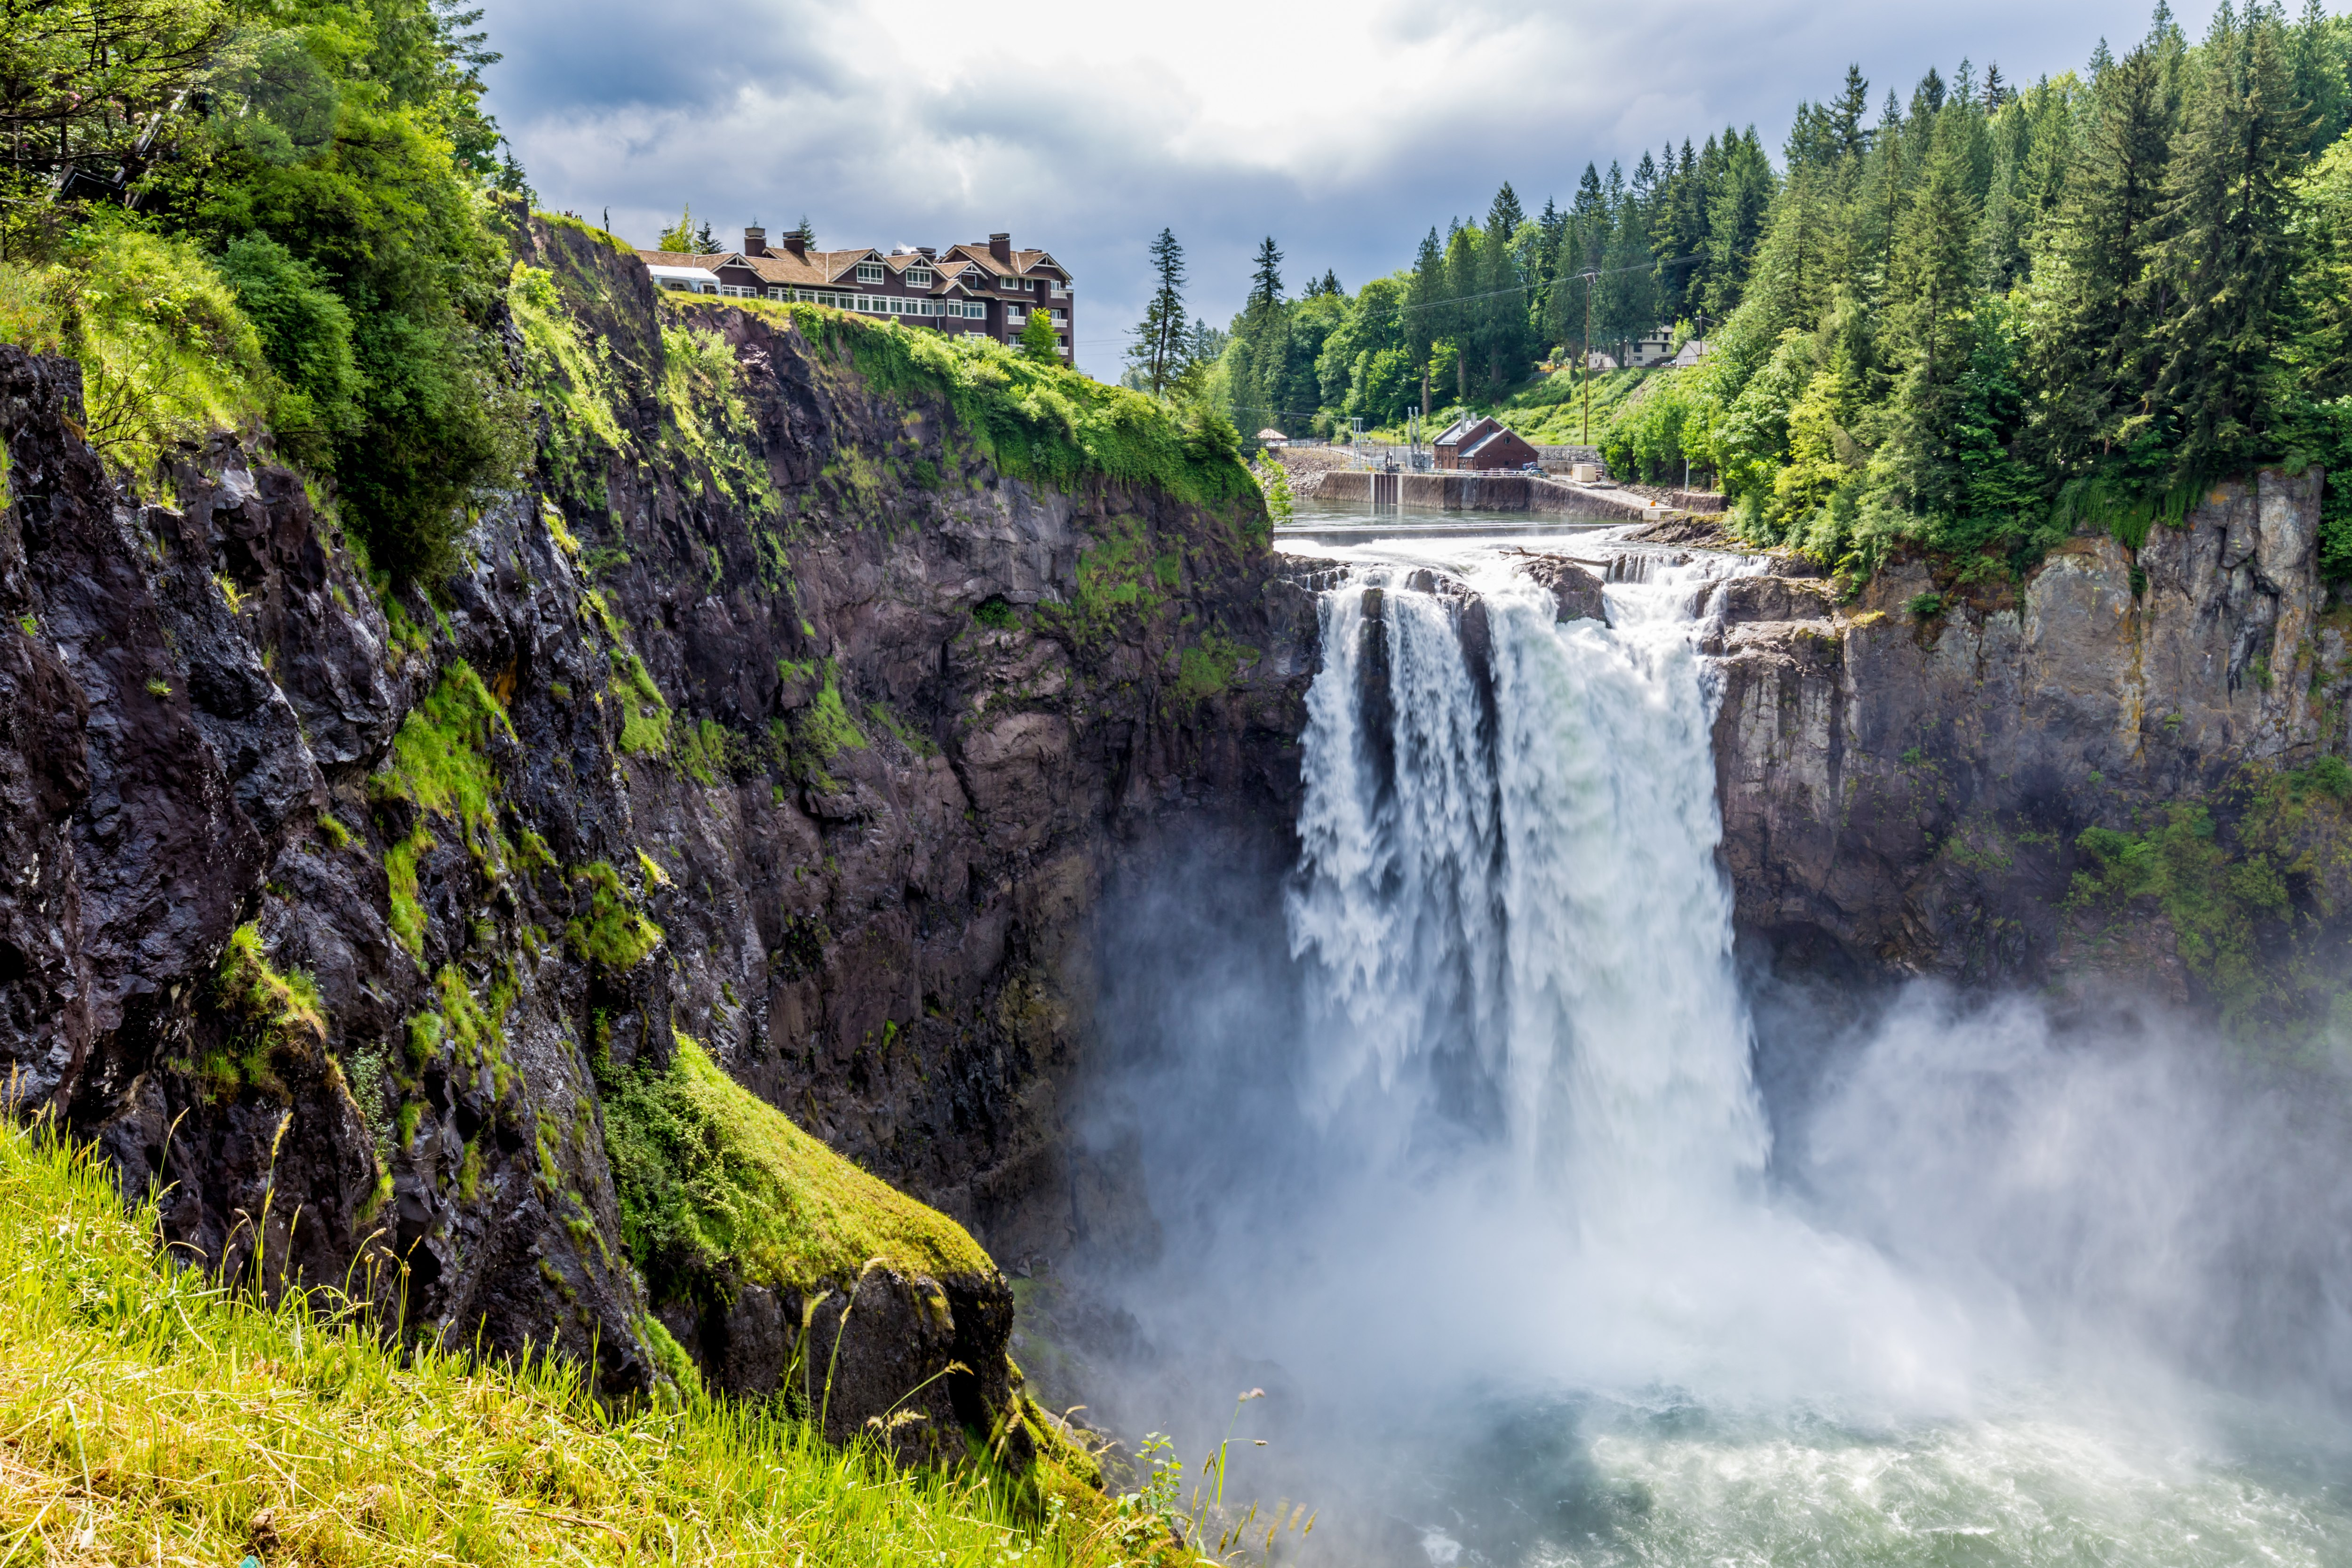 Snoqualmie Falls + Leavenworth One Day Tour from Seattle